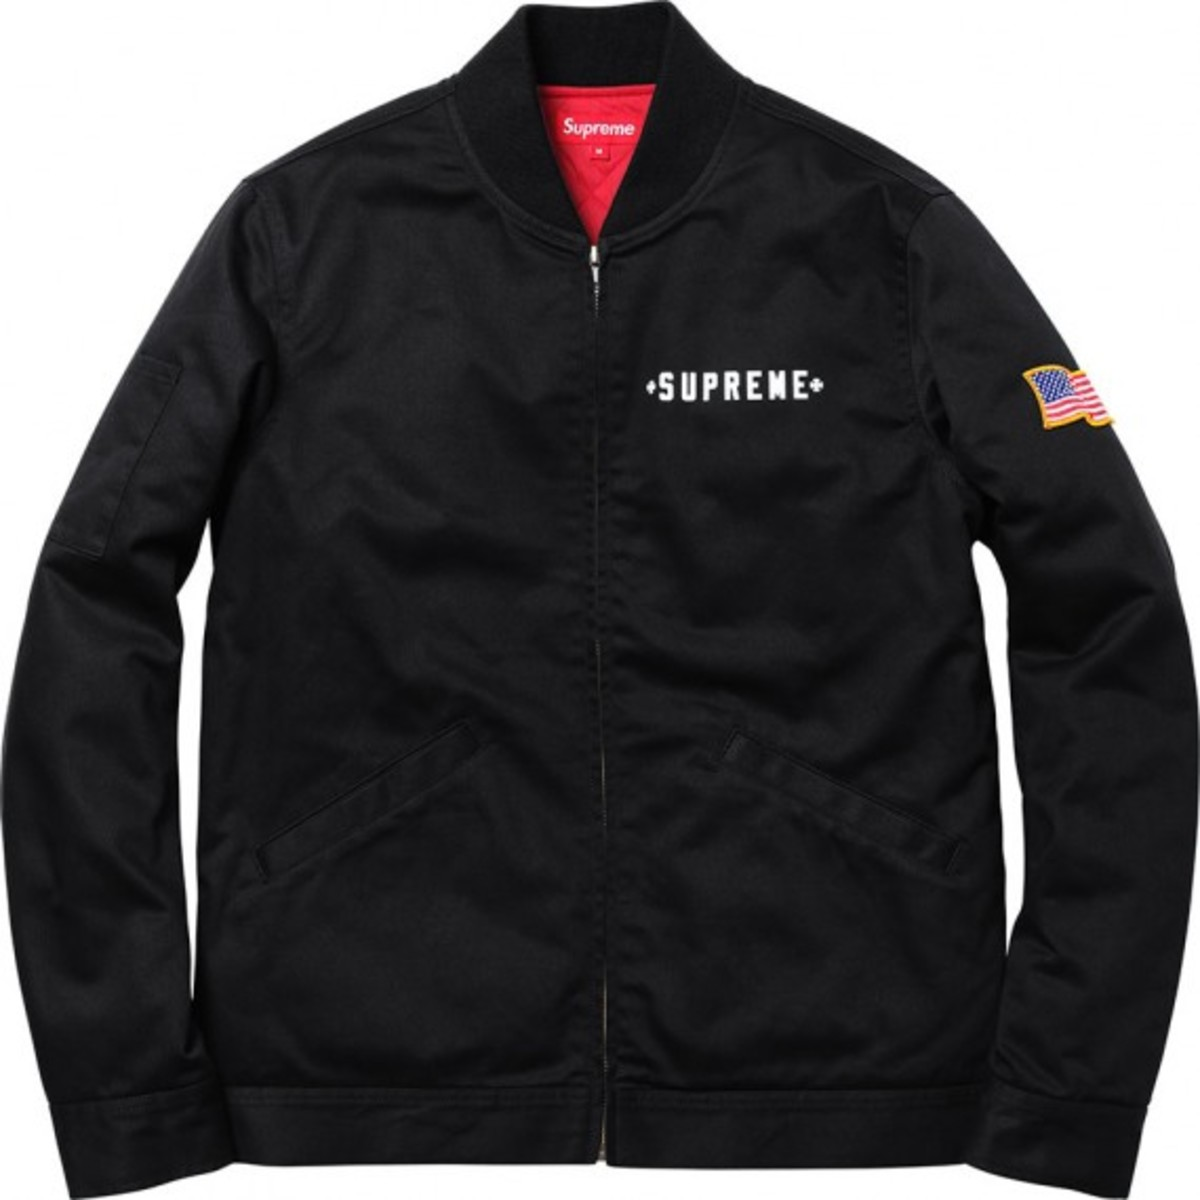 7-supreme--s--independent--r--_jacket-zoom_1345455033